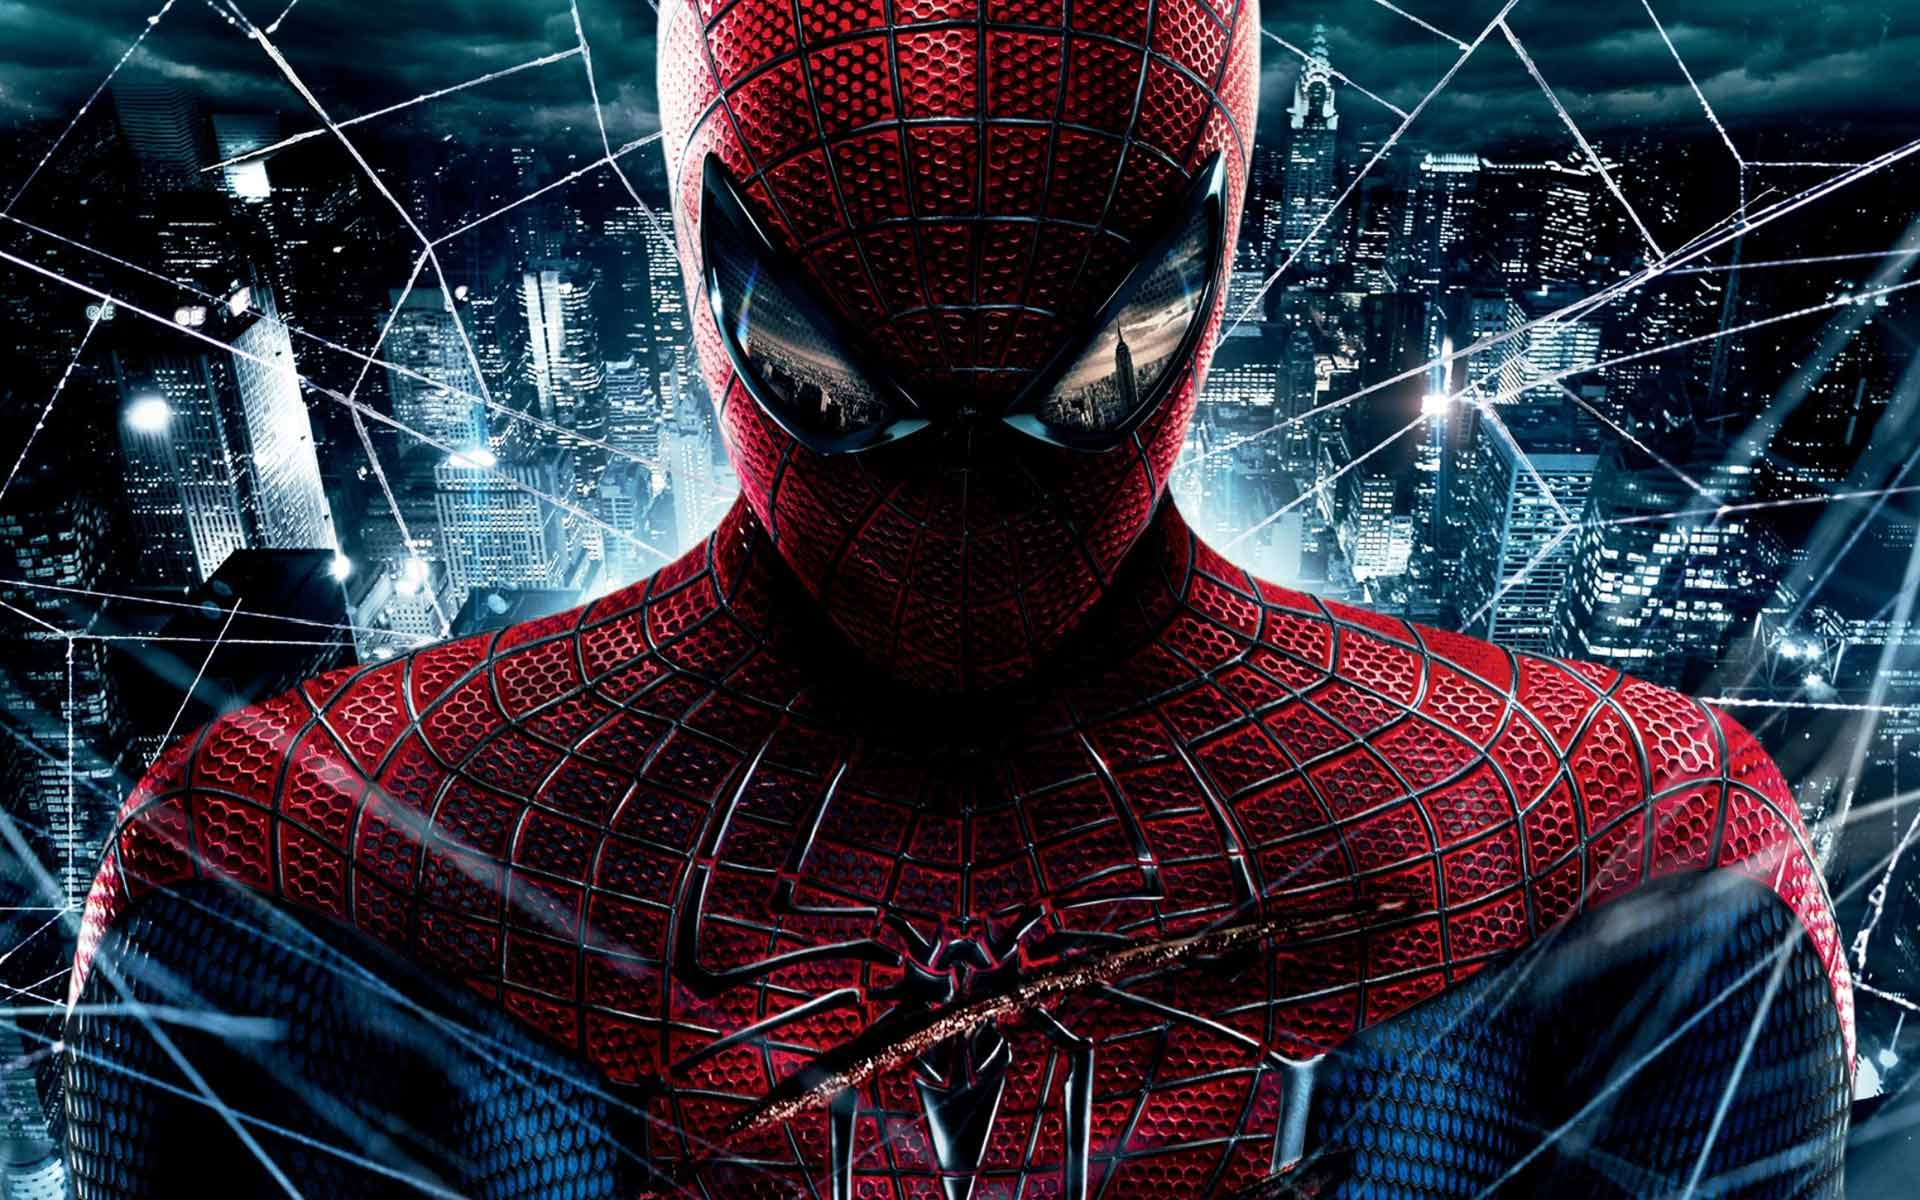 Spiderman wallpaper 1920x1200 43402